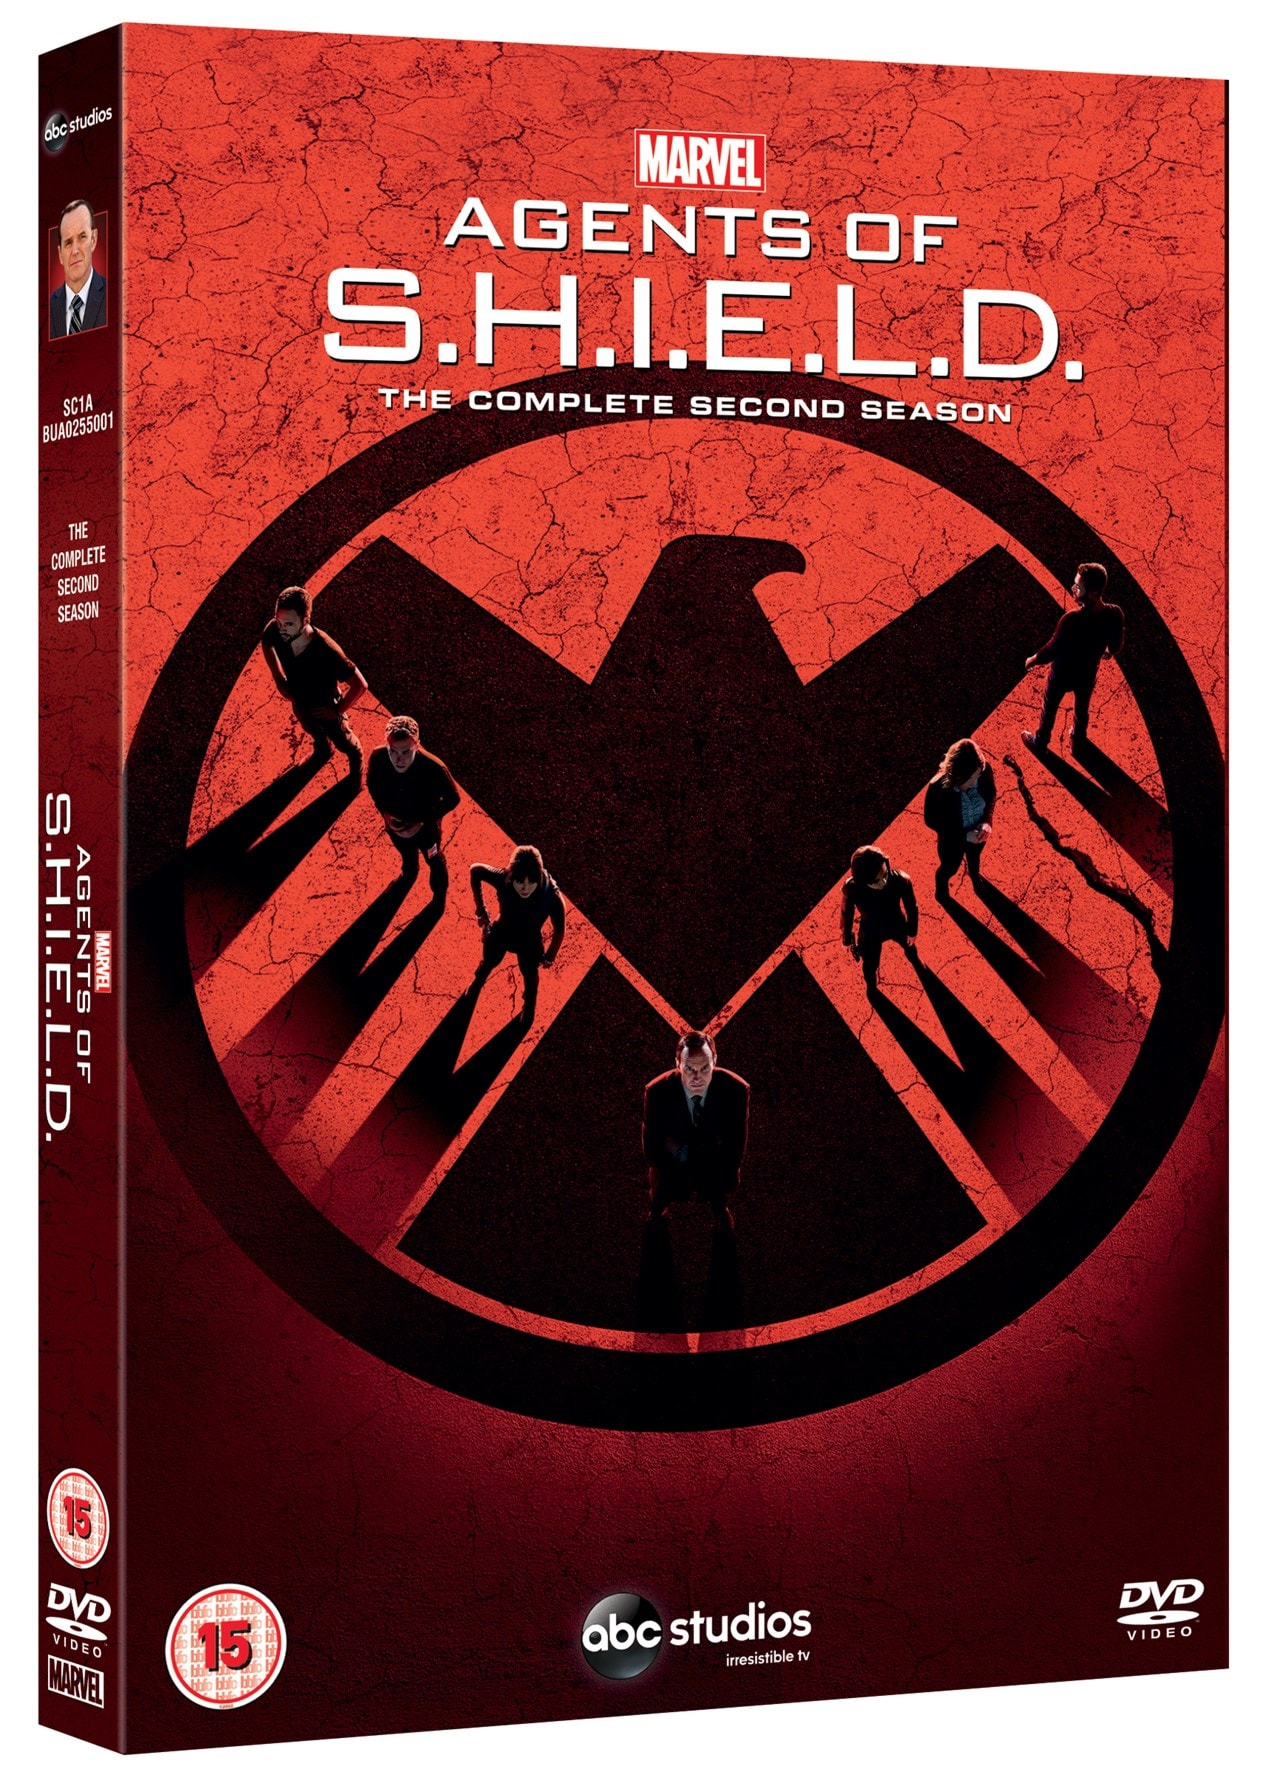 Marvel's Agents of S.H.I.E.L.D.: The Complete Second Season - 2